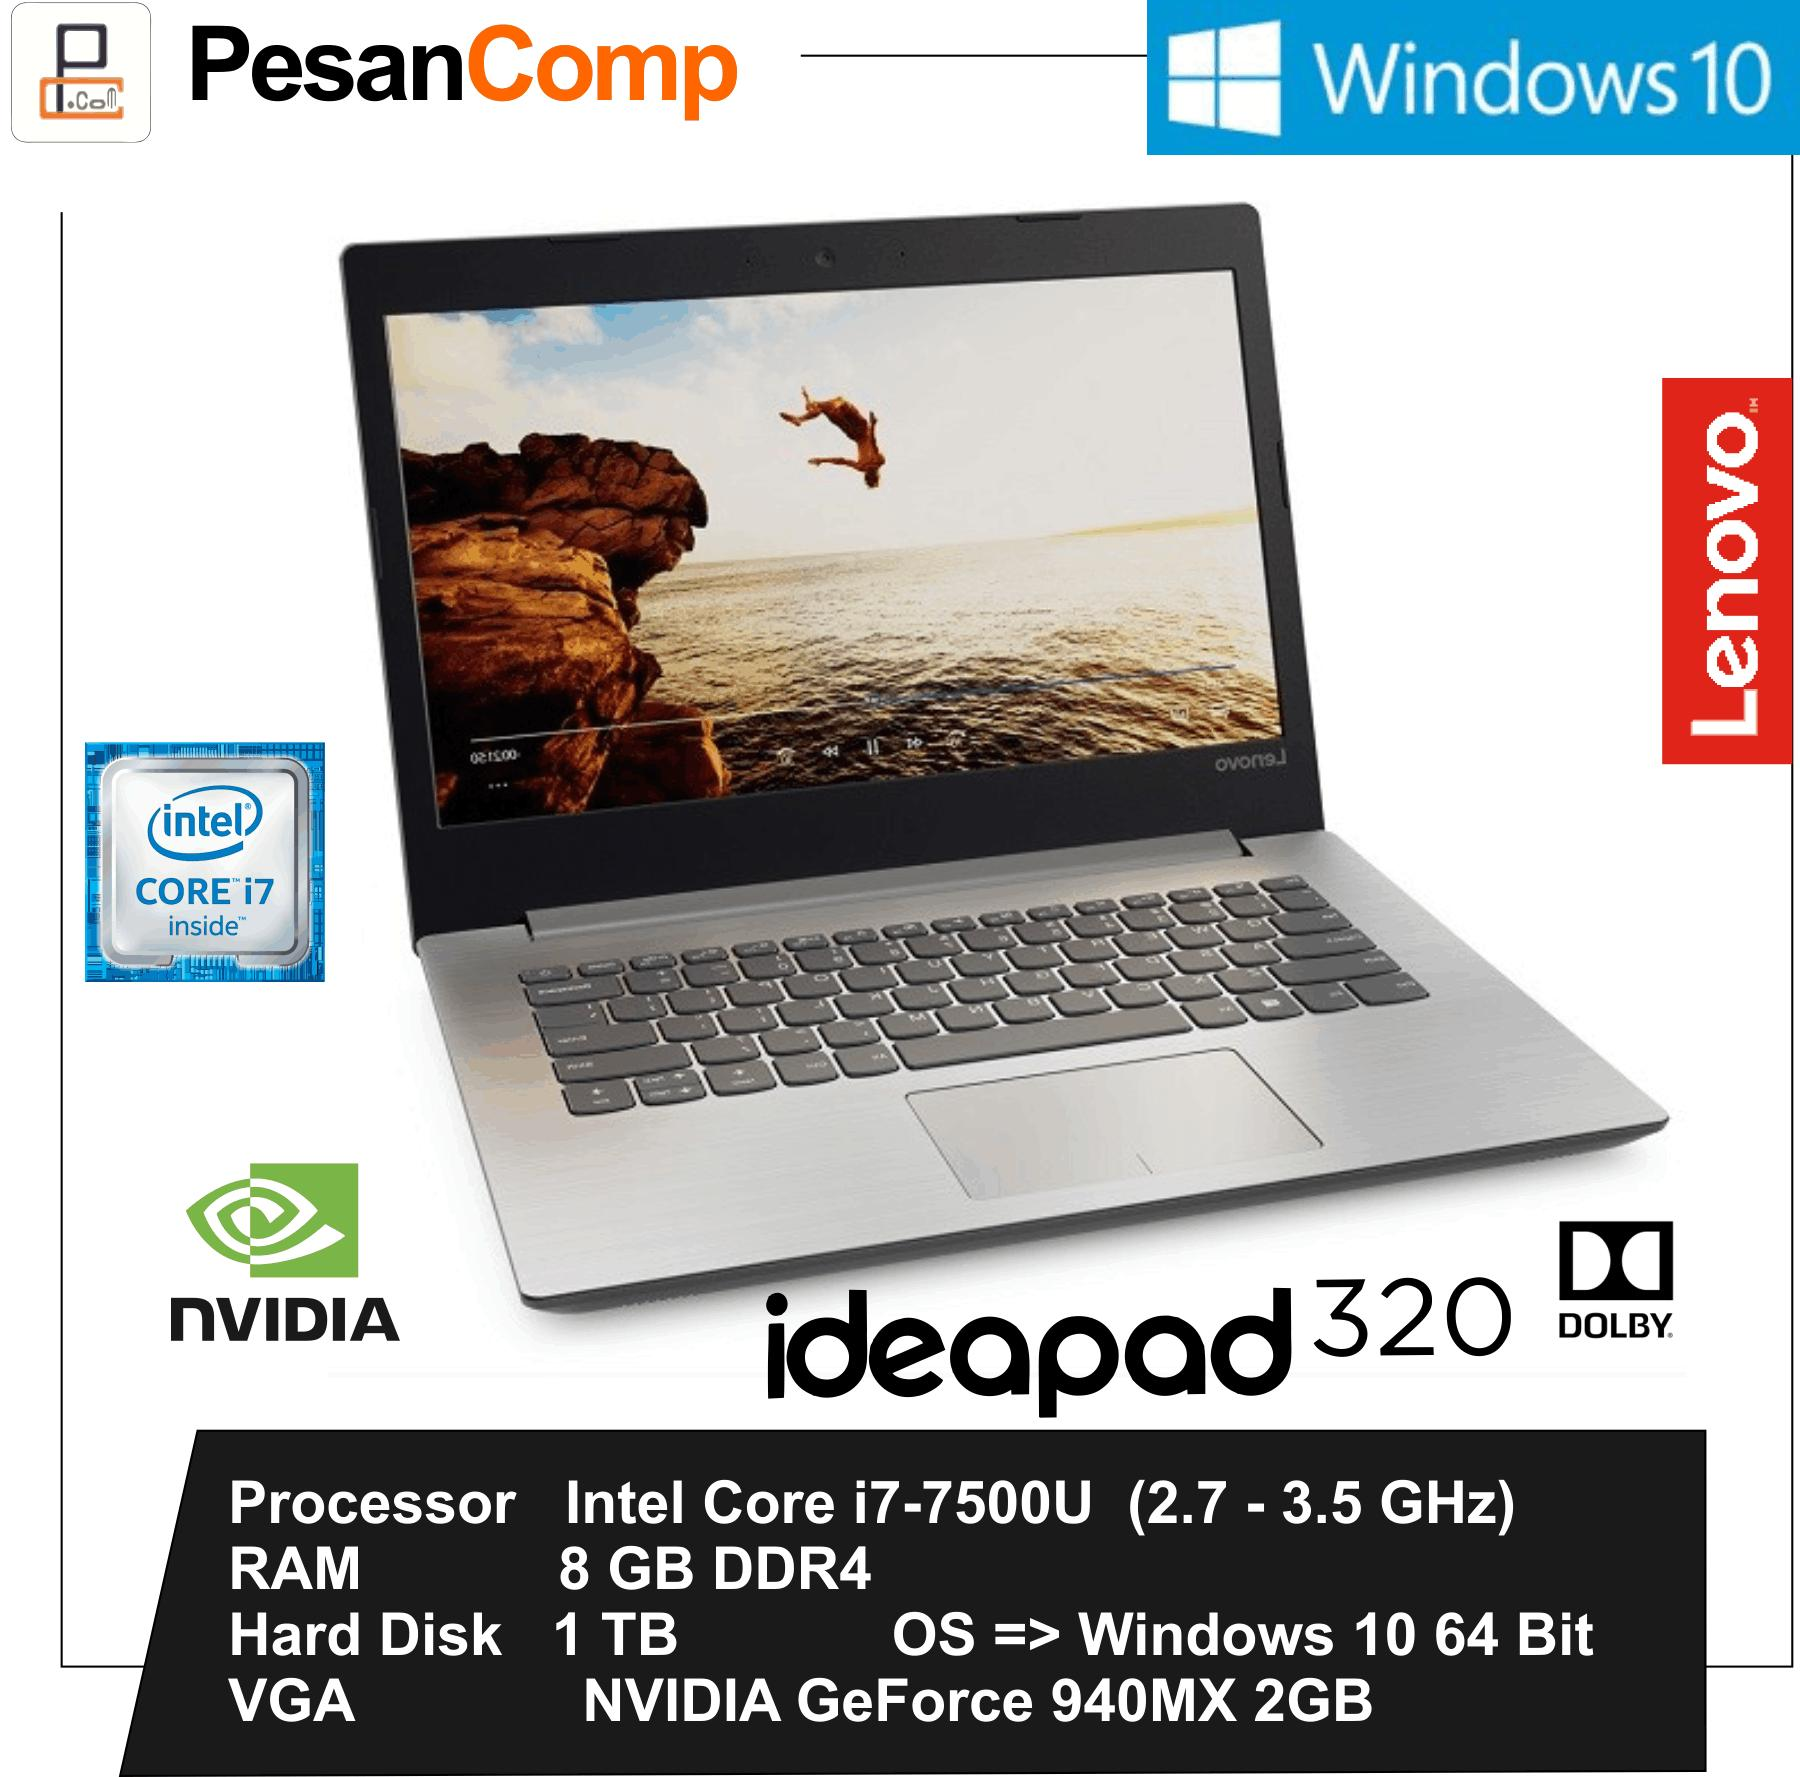 Lenovo IdeaPad 320-14IKB i7-7500U / GeForce 940MX 2GB / 8GB / 1TB / Windows 10 / USB Type - C / Garansi Resmi